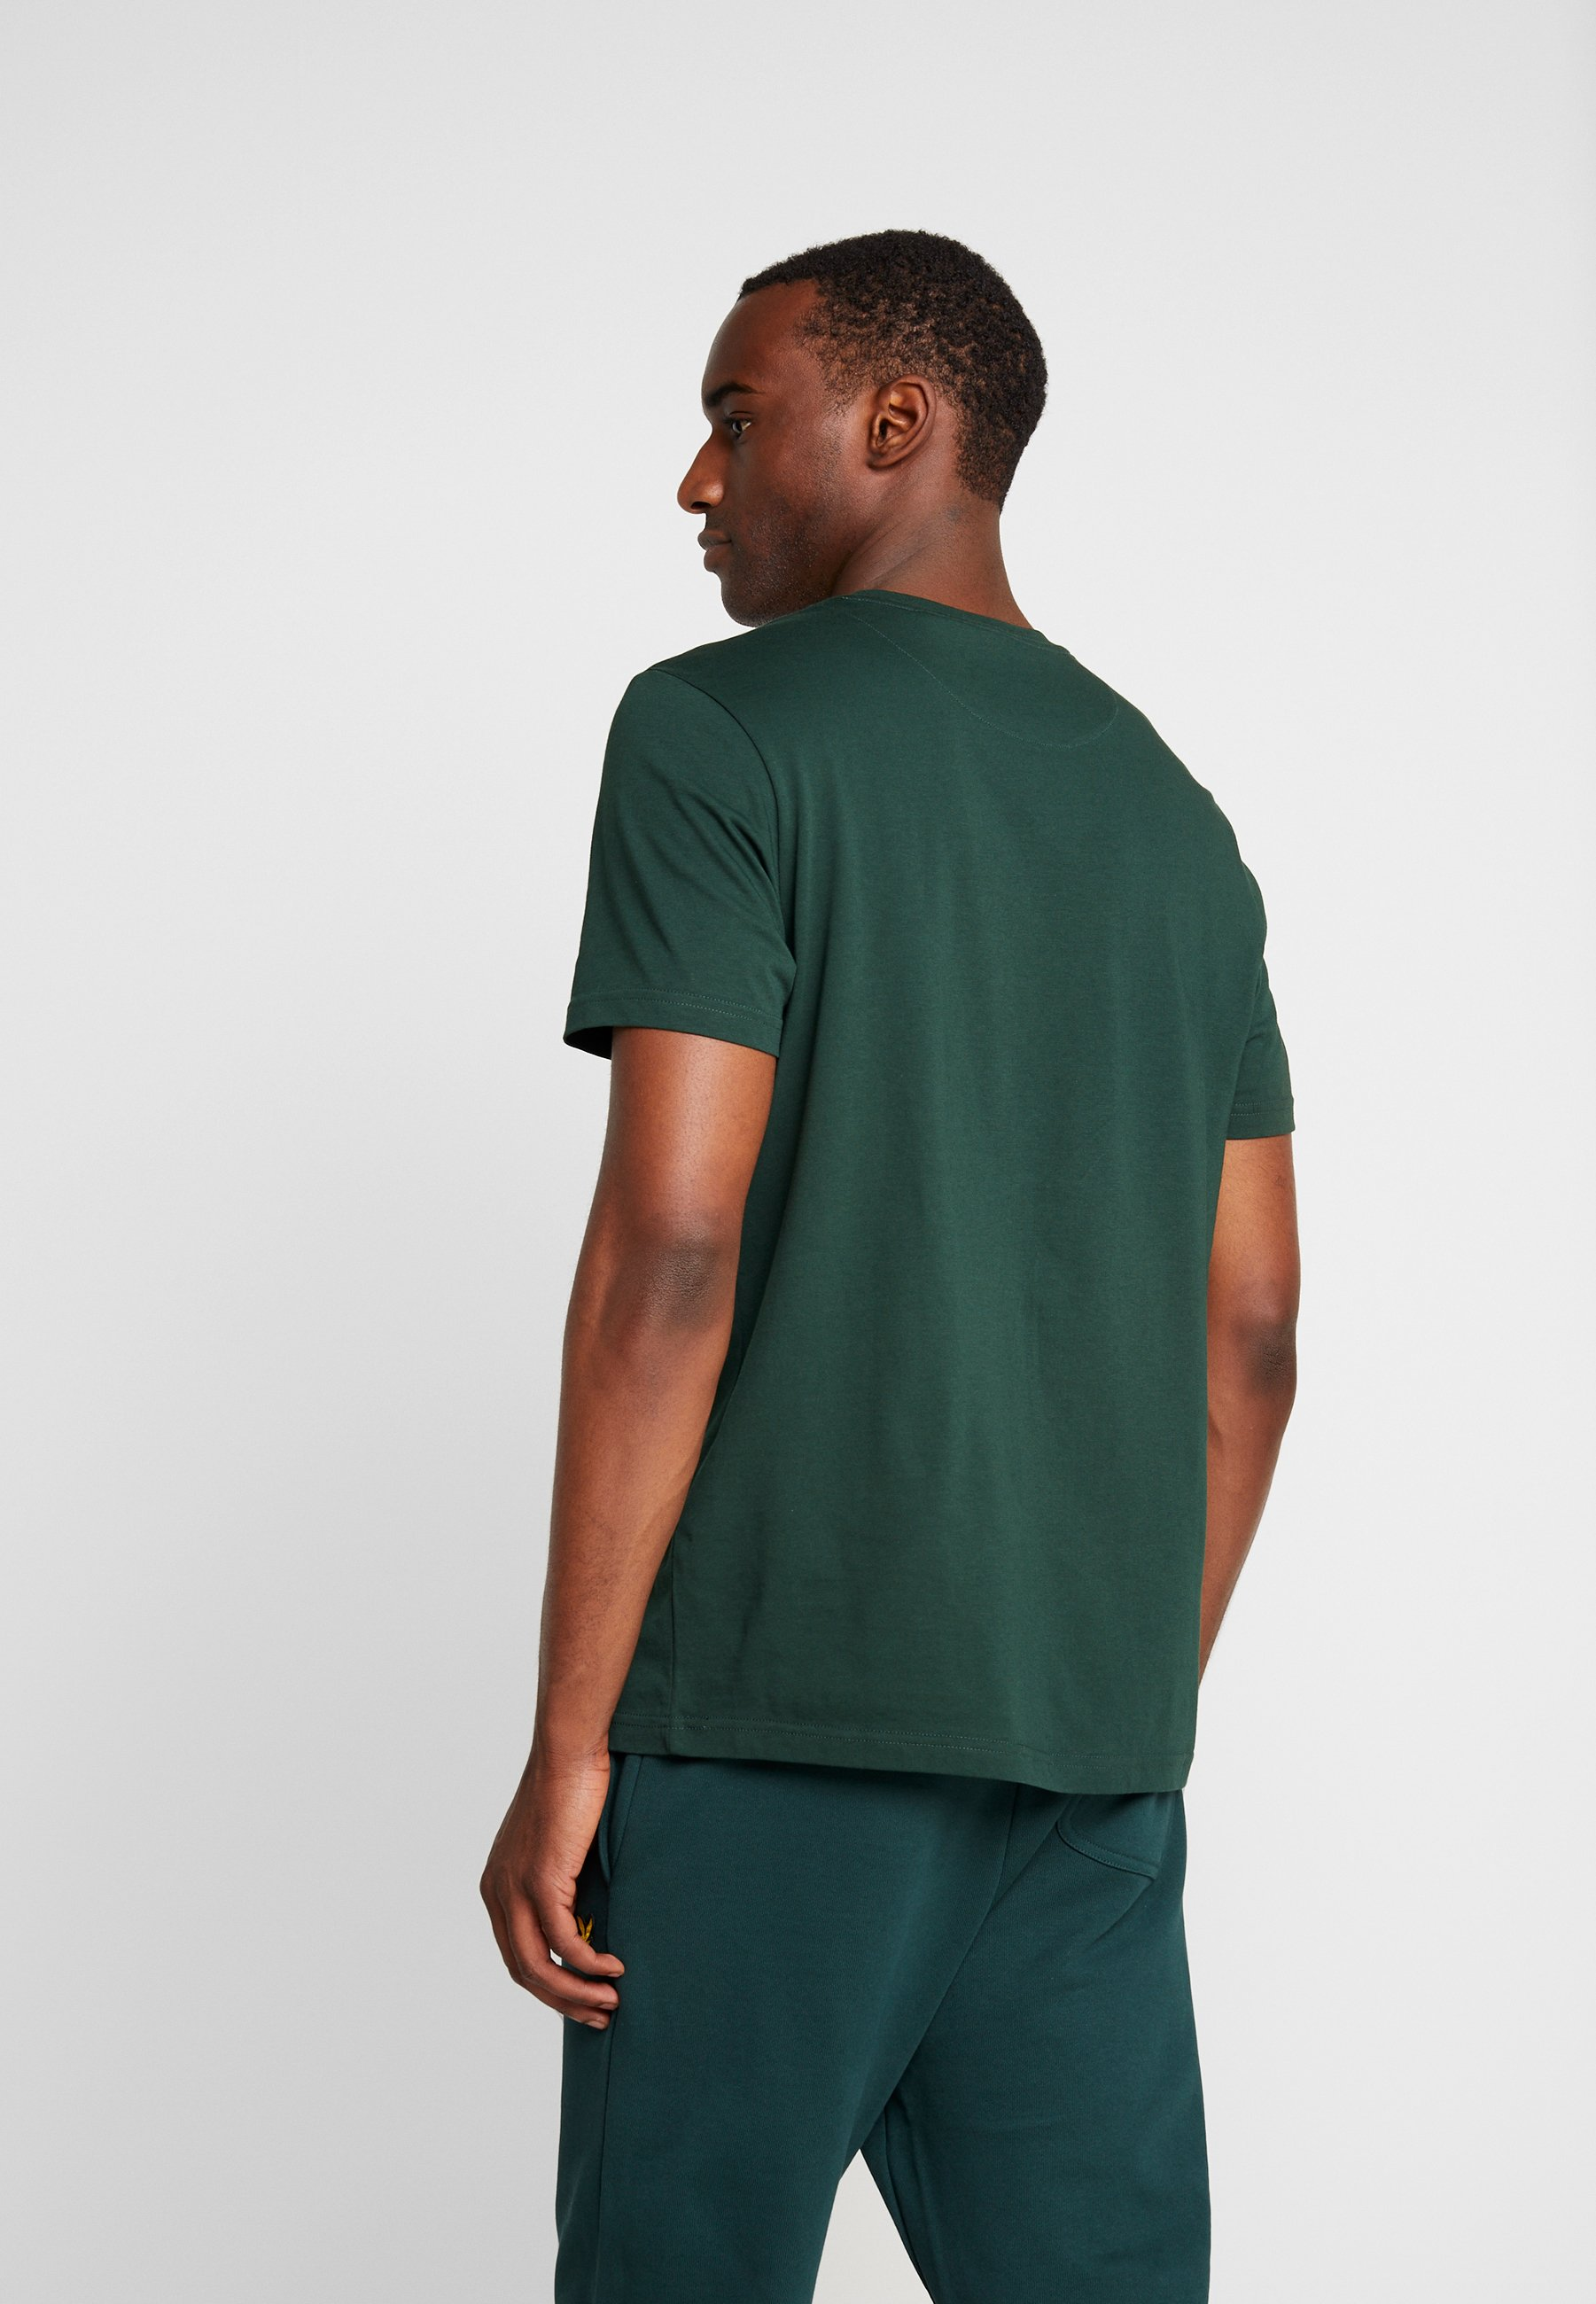 Lyleamp; NeckT Jade Crew shirt Green Scott Basique rxoedWCB